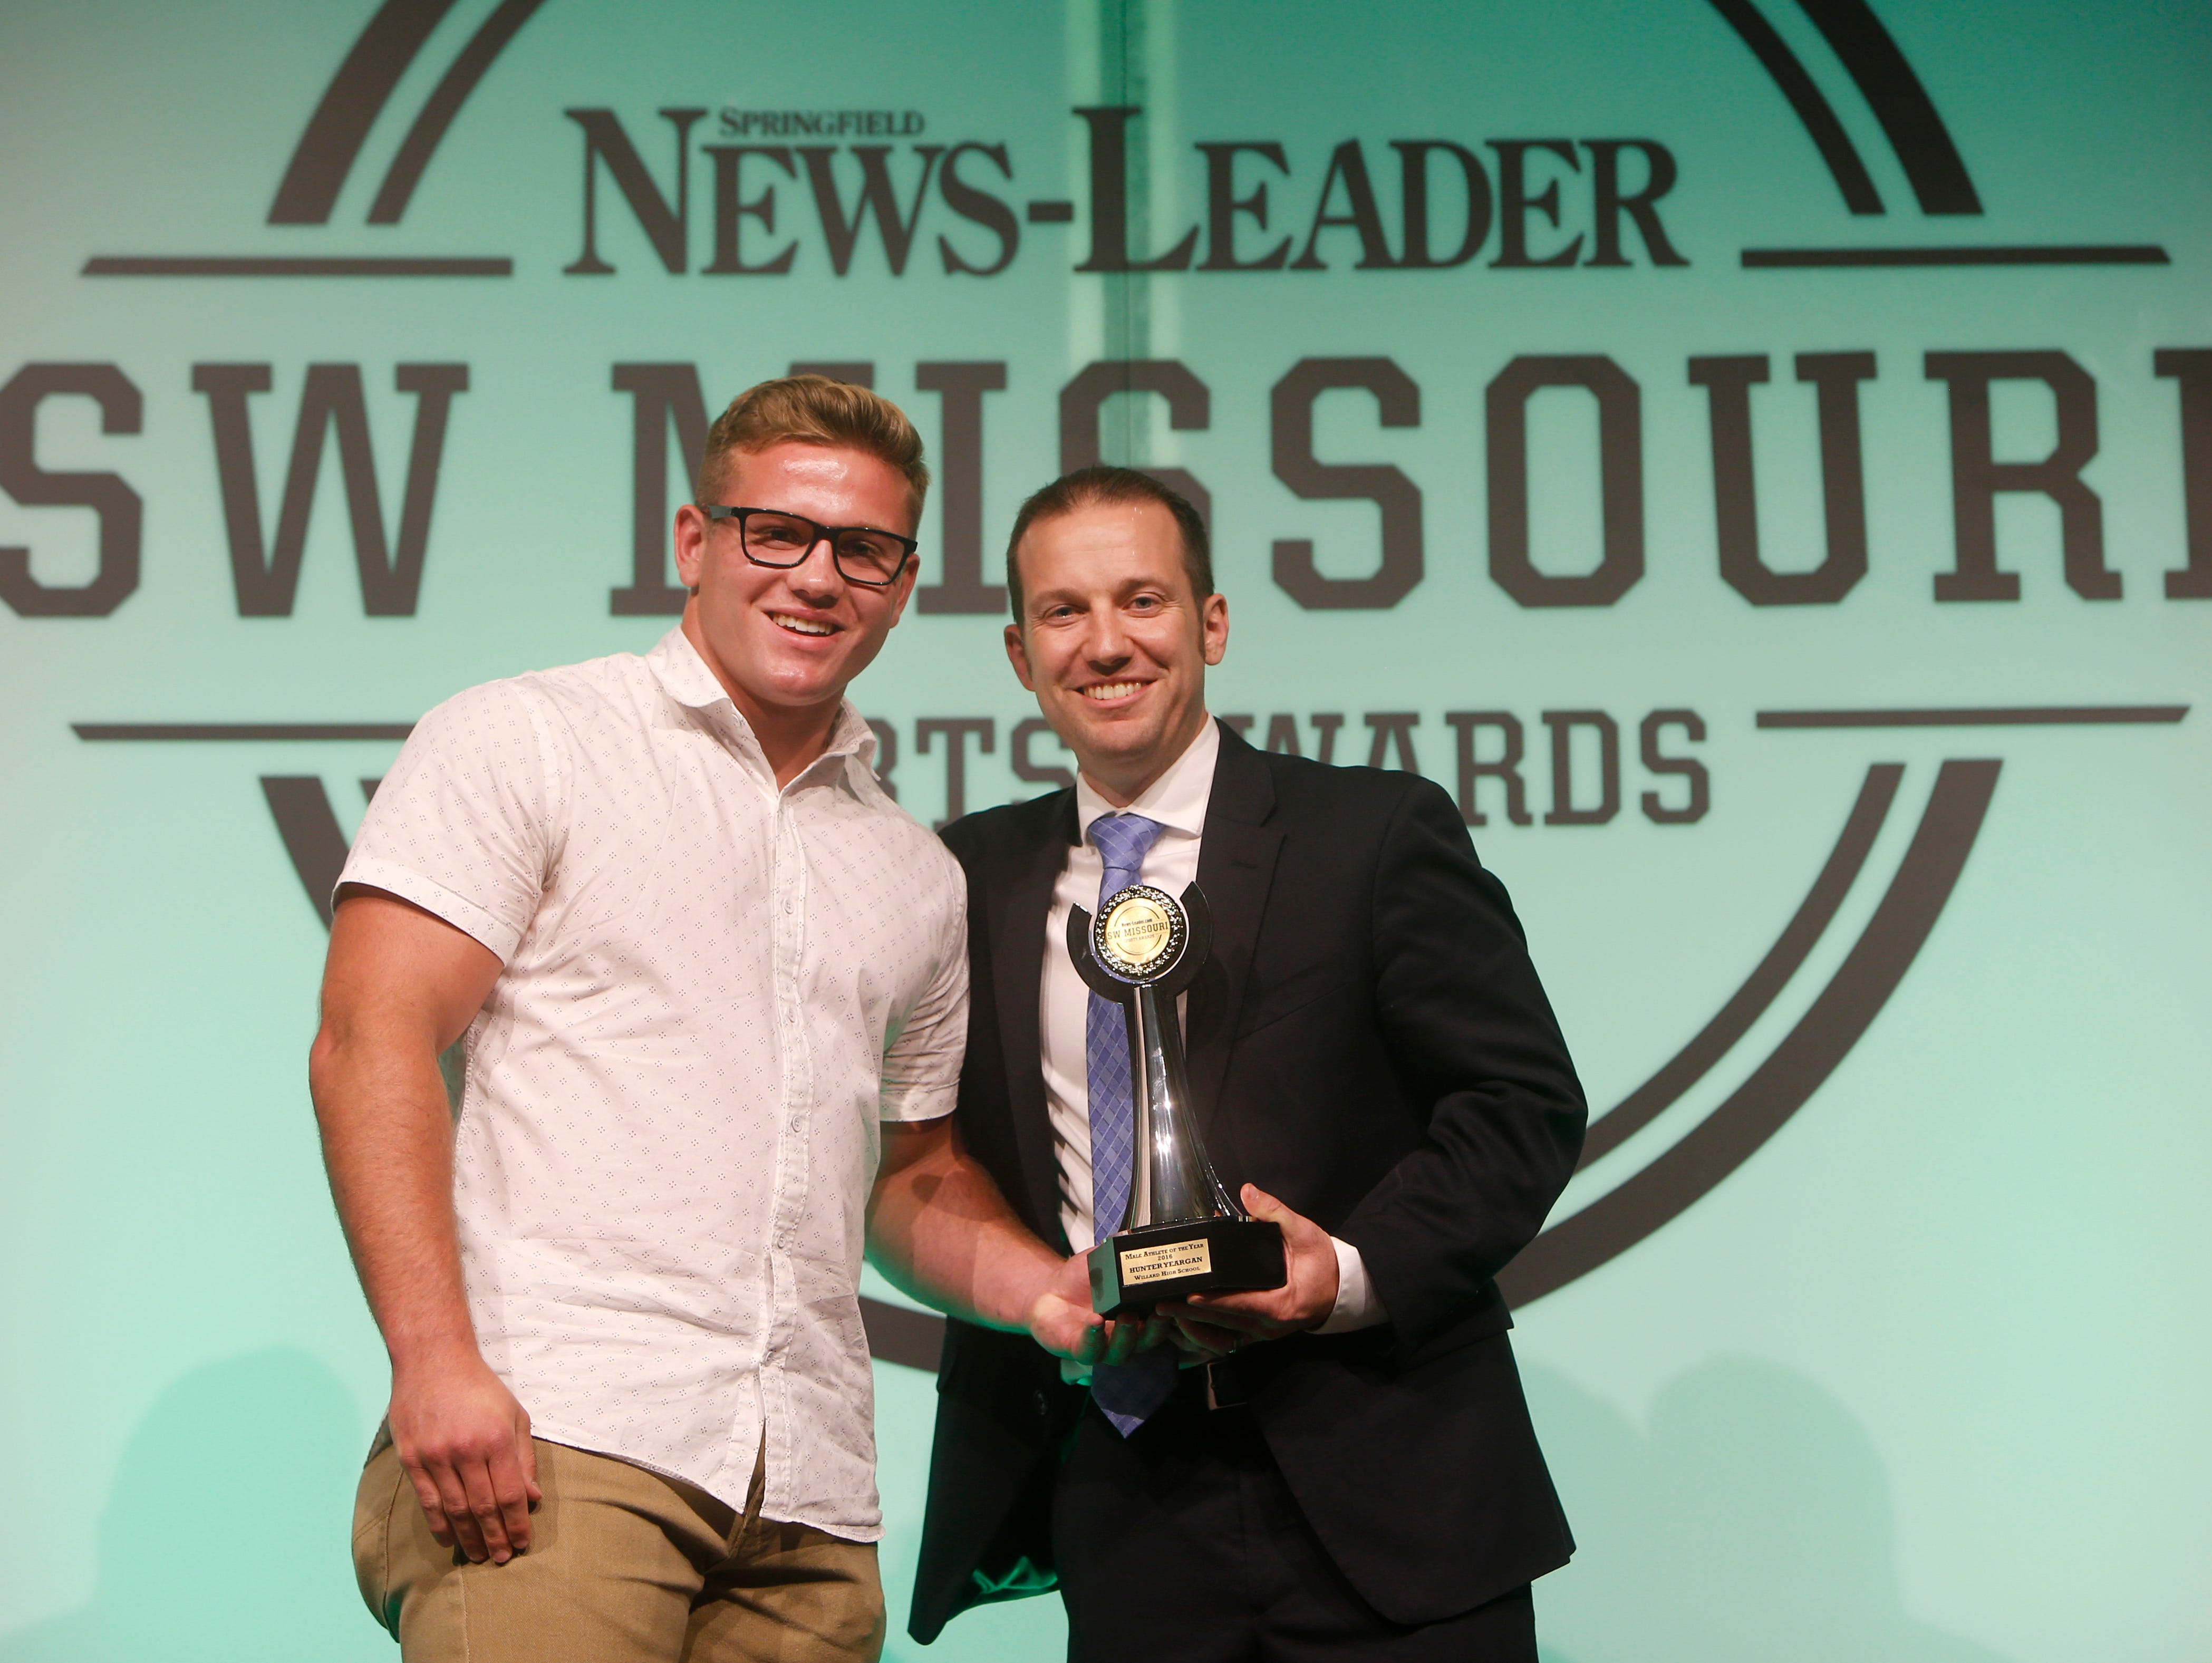 Willard wrestler Hunter Yeargan was named the male athlete of the year during the 2016 Southwest Missouri Sports Awards at the Springfield Expo Center on Thursday, June 9, 2016. Presenting him with the award is News-Leader President Allen Jones.